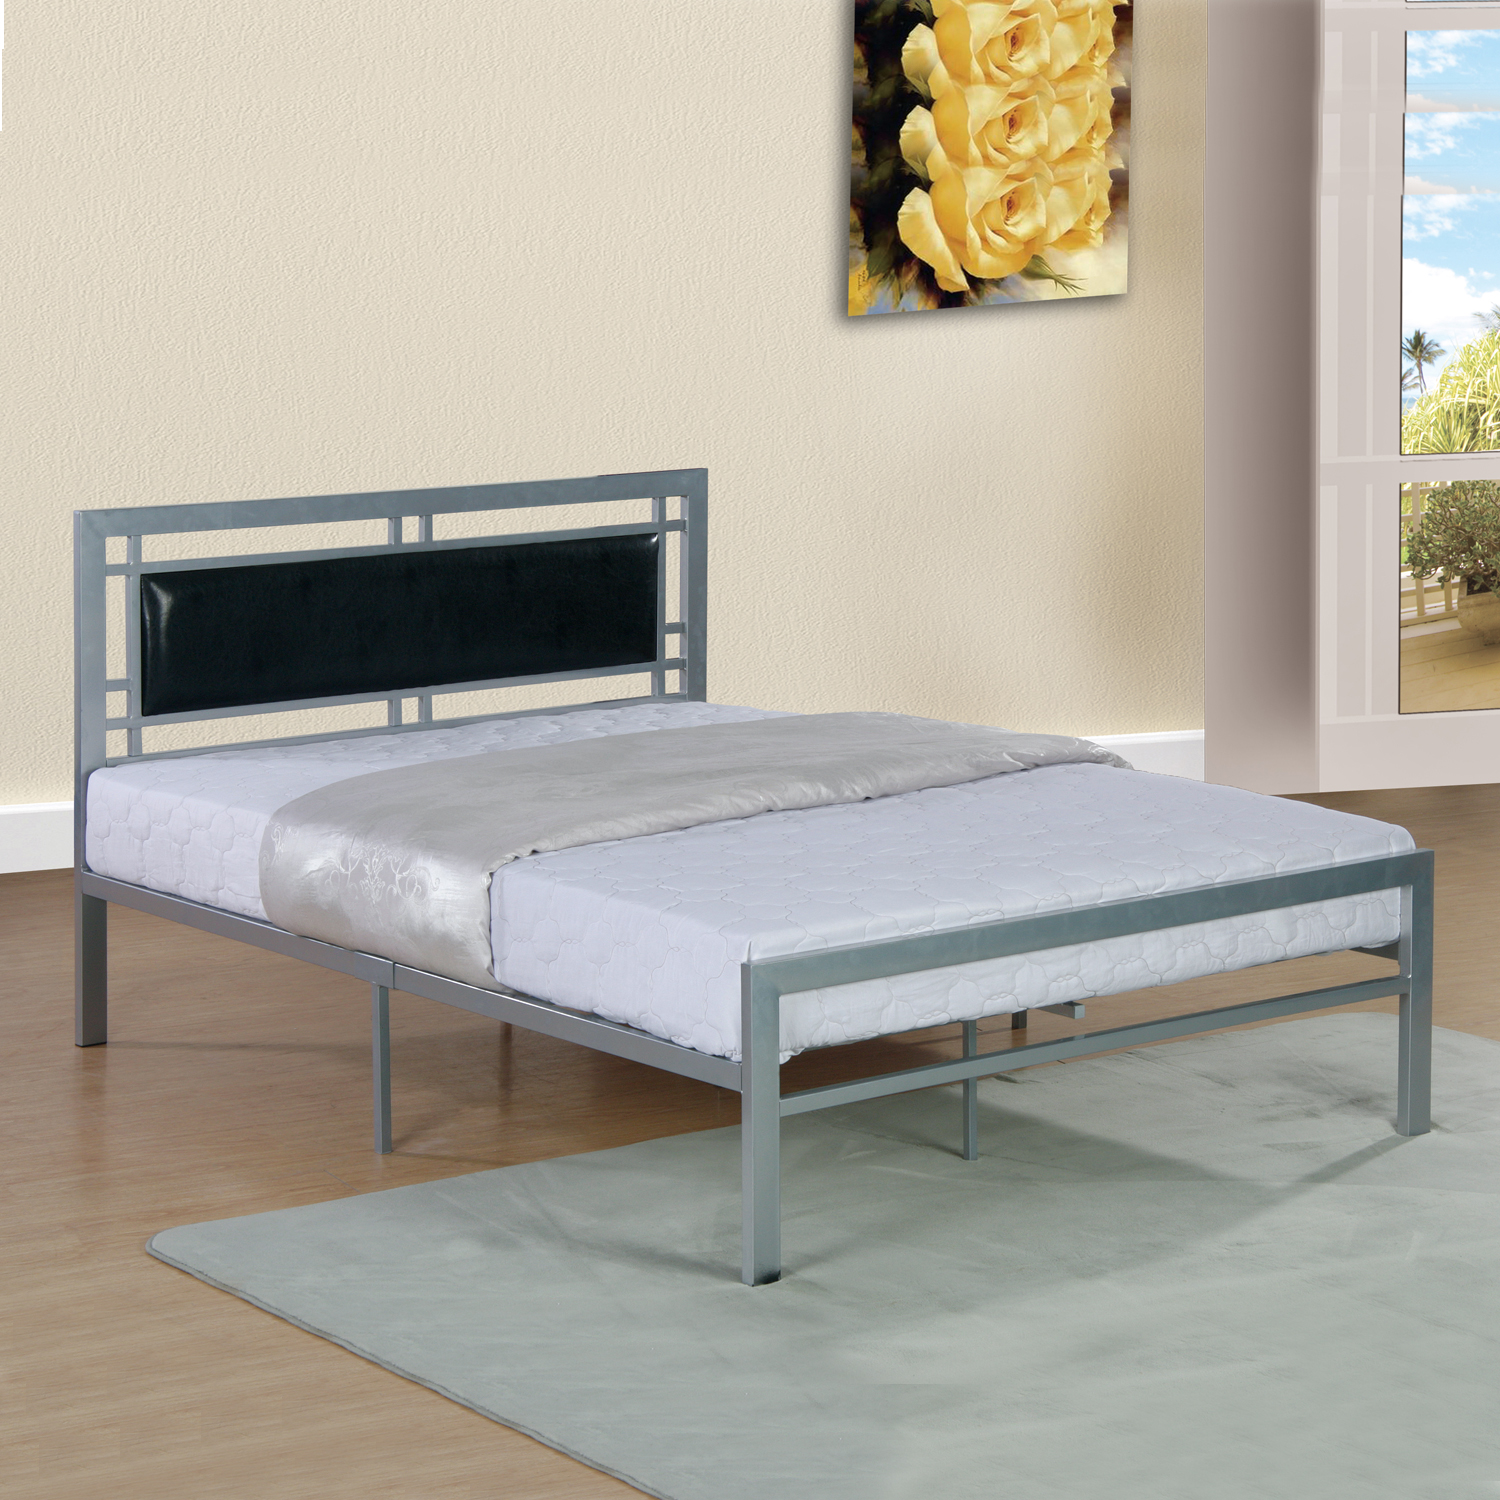 Home Source Rectangle Accent Headboard Twin Bed